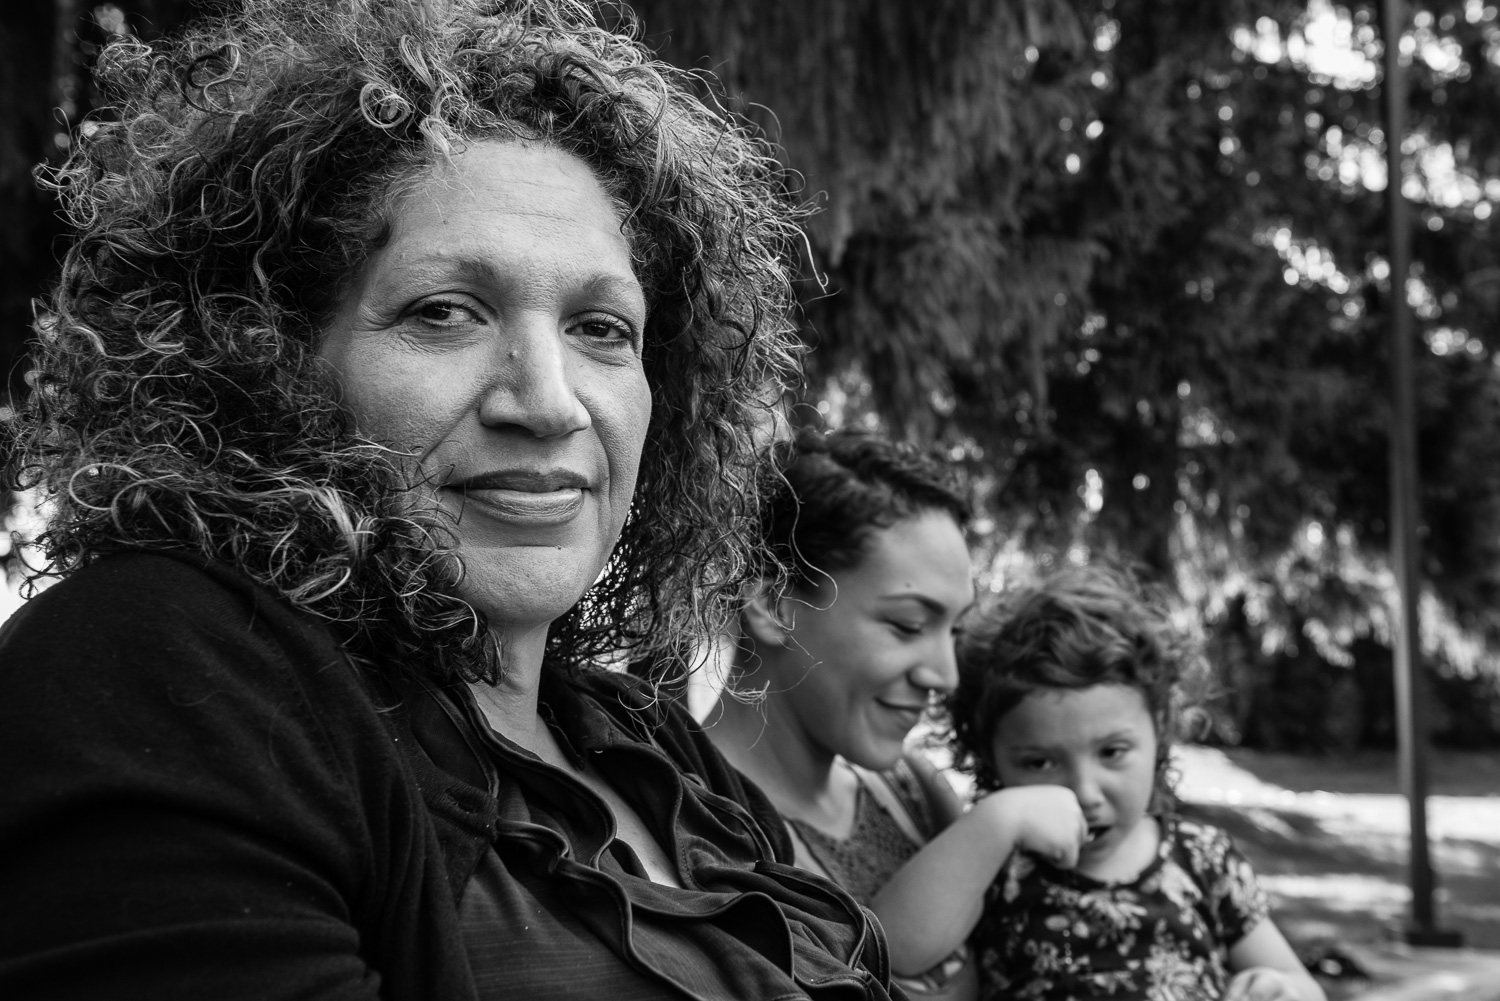 """Carmen and her daughter and granddaughter just after our interview about her life and LFOs.""""People change. People get better. Families reunite. There is always hope there. Hope is what I'd like to end on."""""""